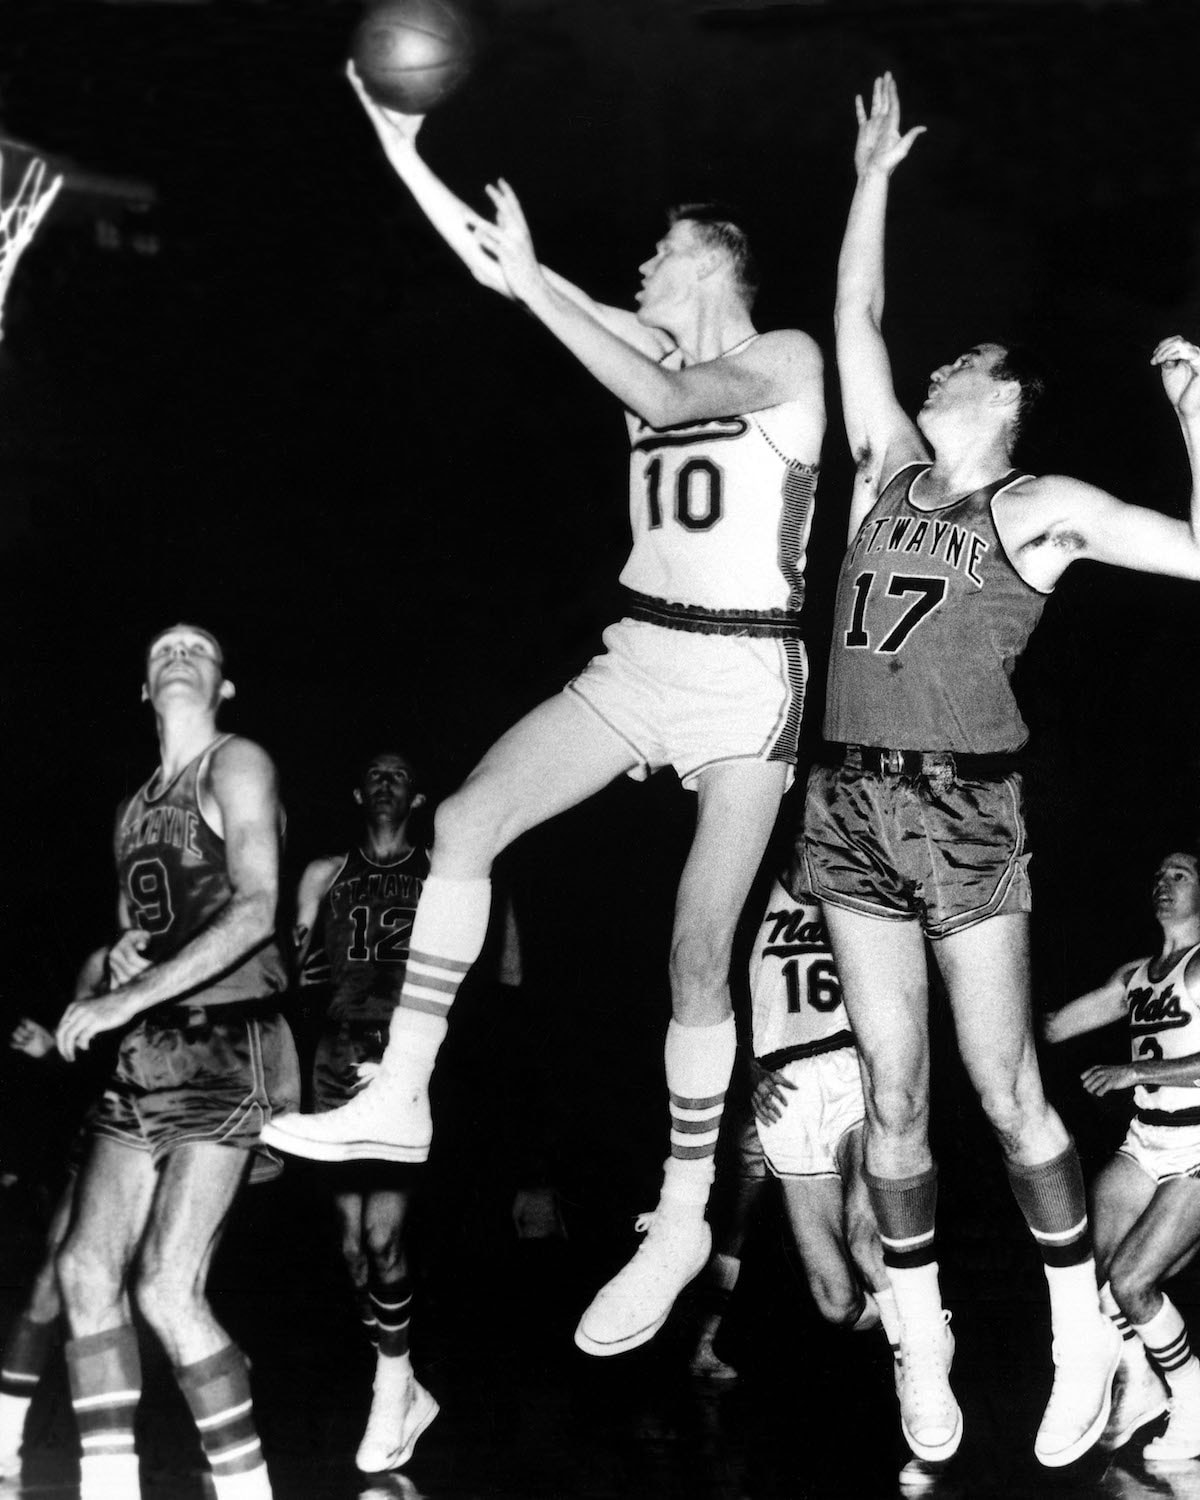 1960  Johnny Red Kerr  10 of the Syracuse Nationals drives to the basket for 1a53e100b